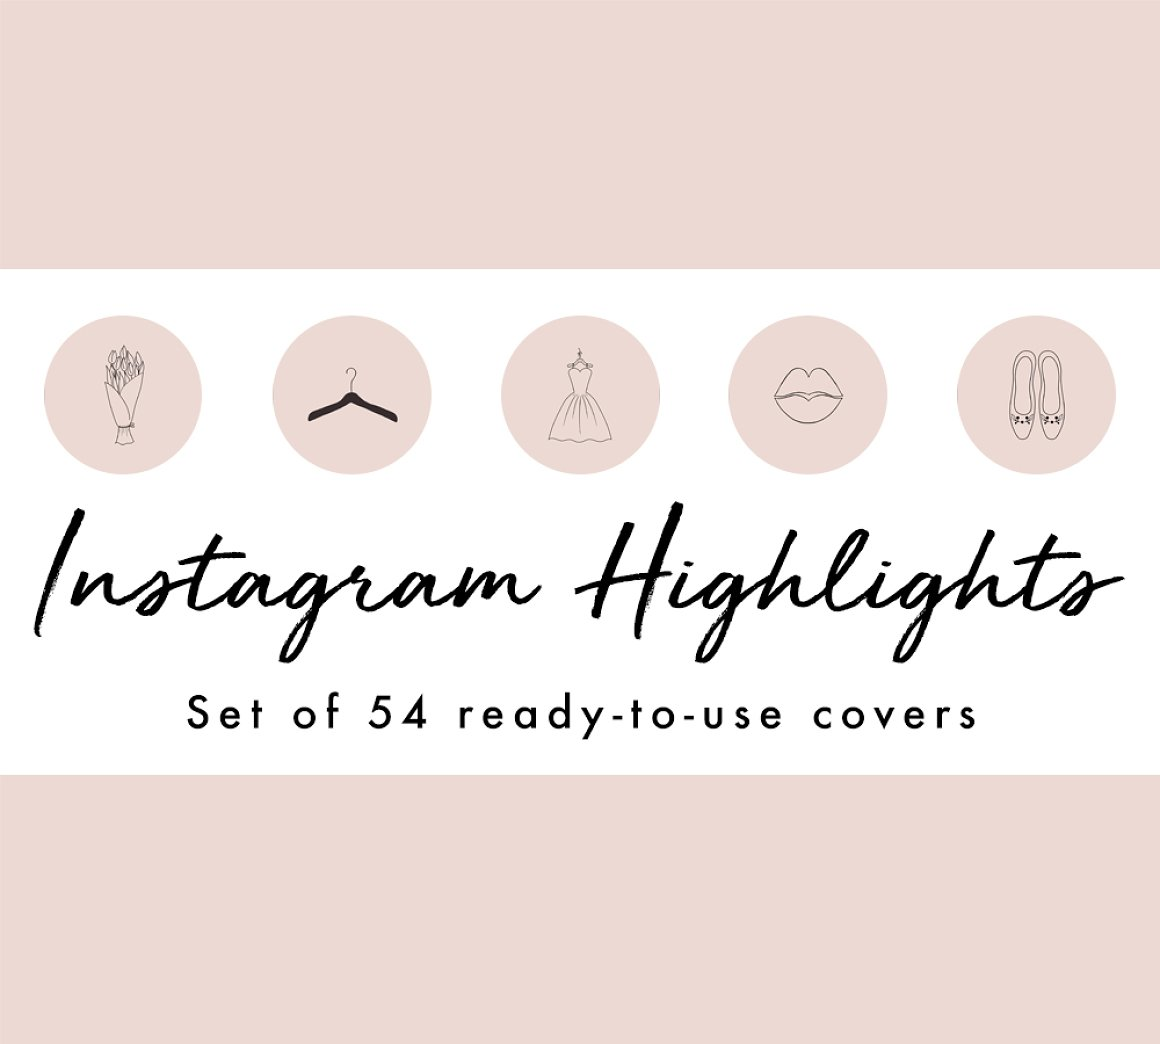 20 Brilliant Instagram Highlight Icon Sets For Brands